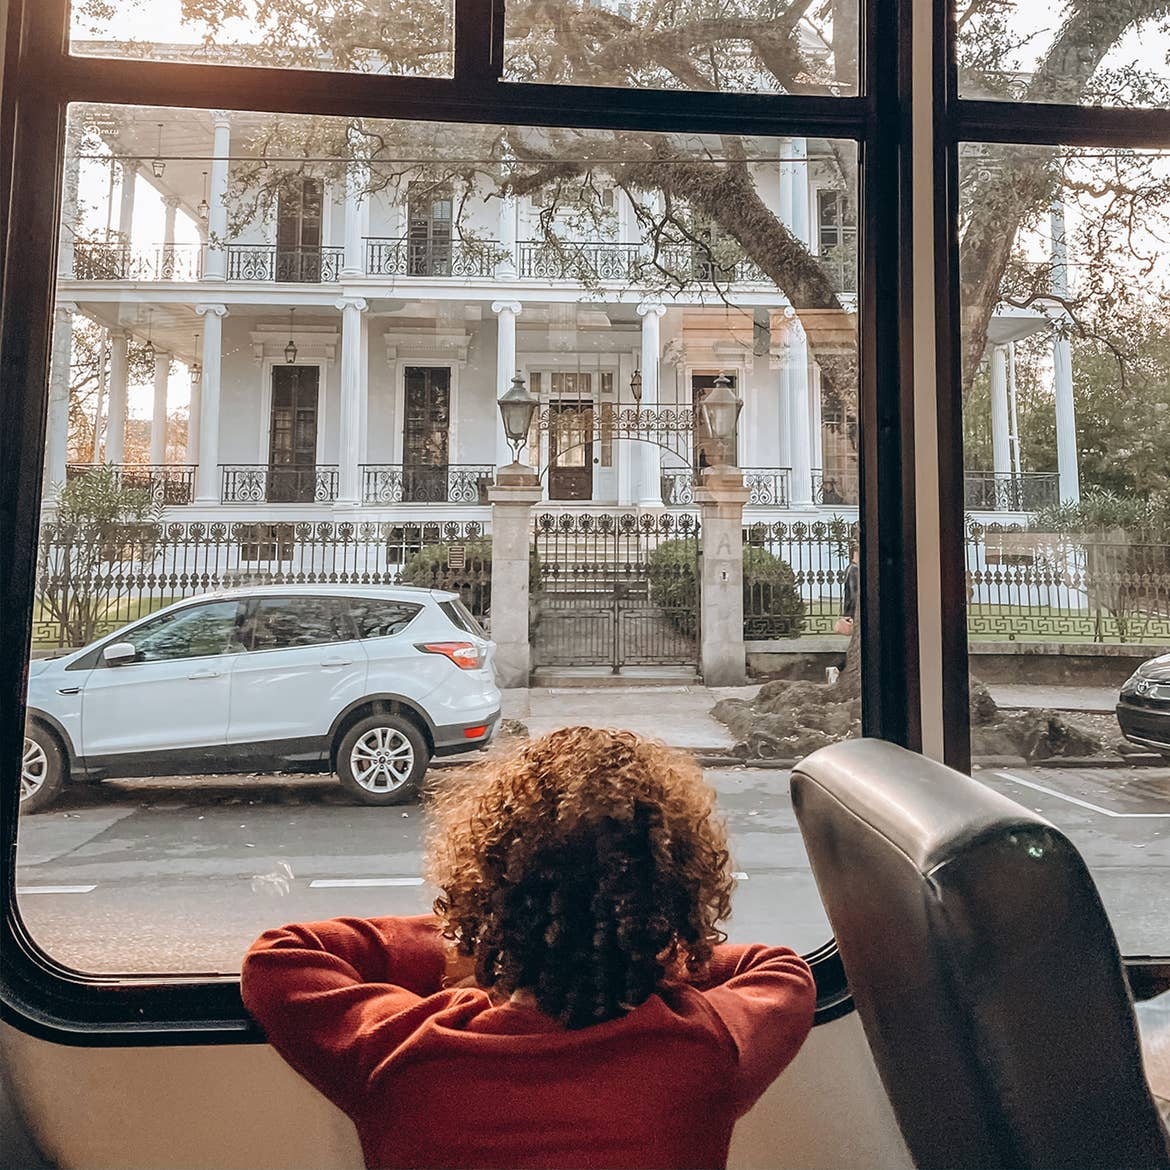 Featured Contributor, Sally Butan of @butanclan's son, Alex, looks out a bus window at the exterior of a white house in the Garden District of New Orleans, Louisiana.